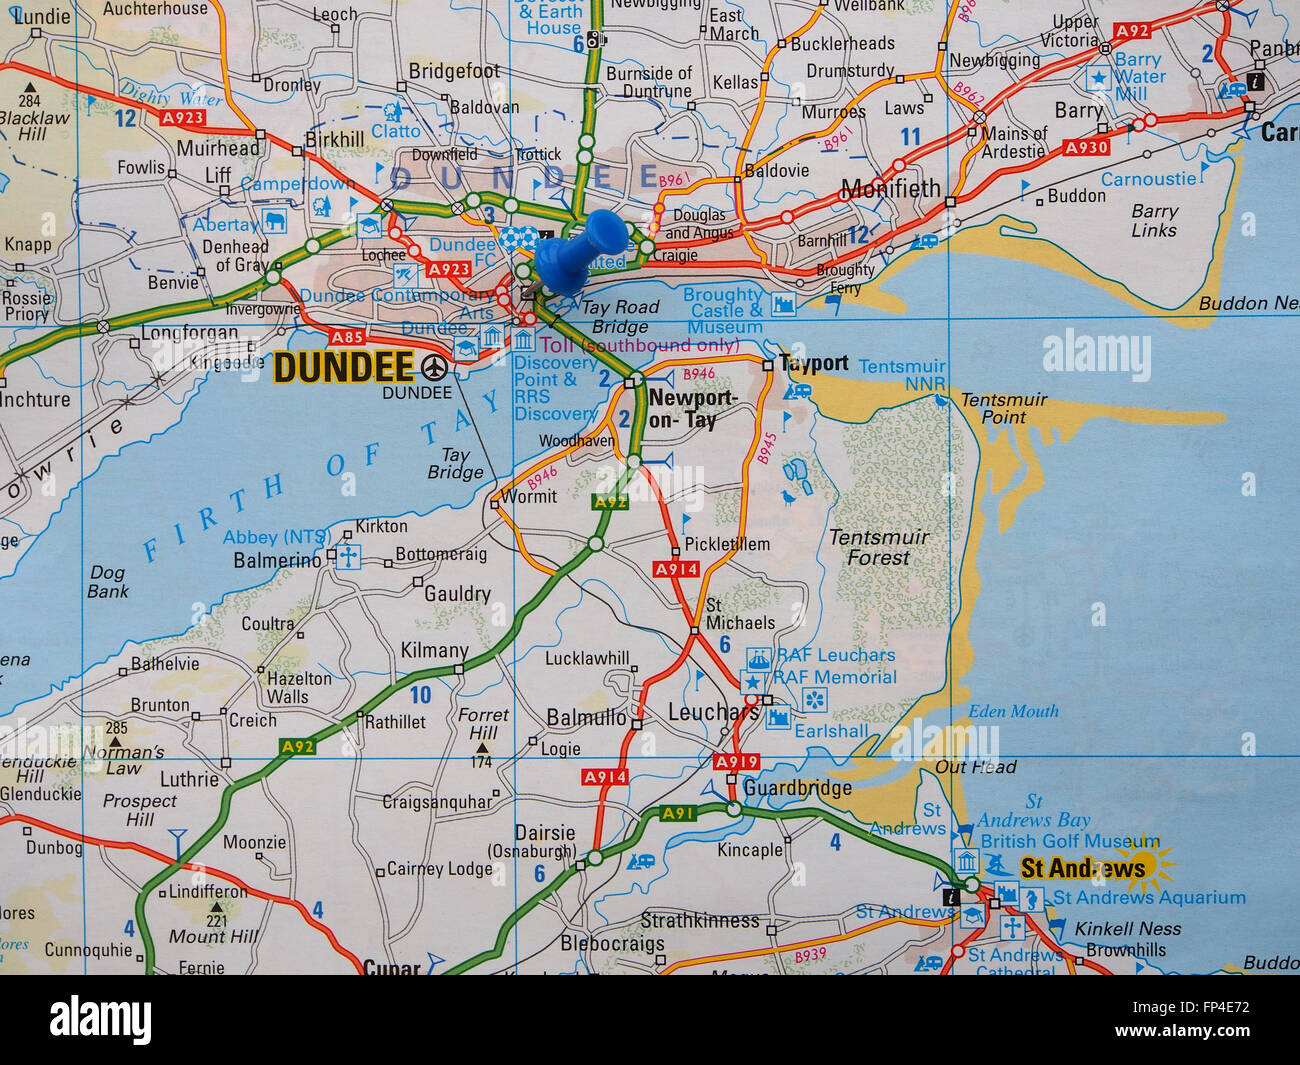 road map of scotland showing the dundee area and with a map pin